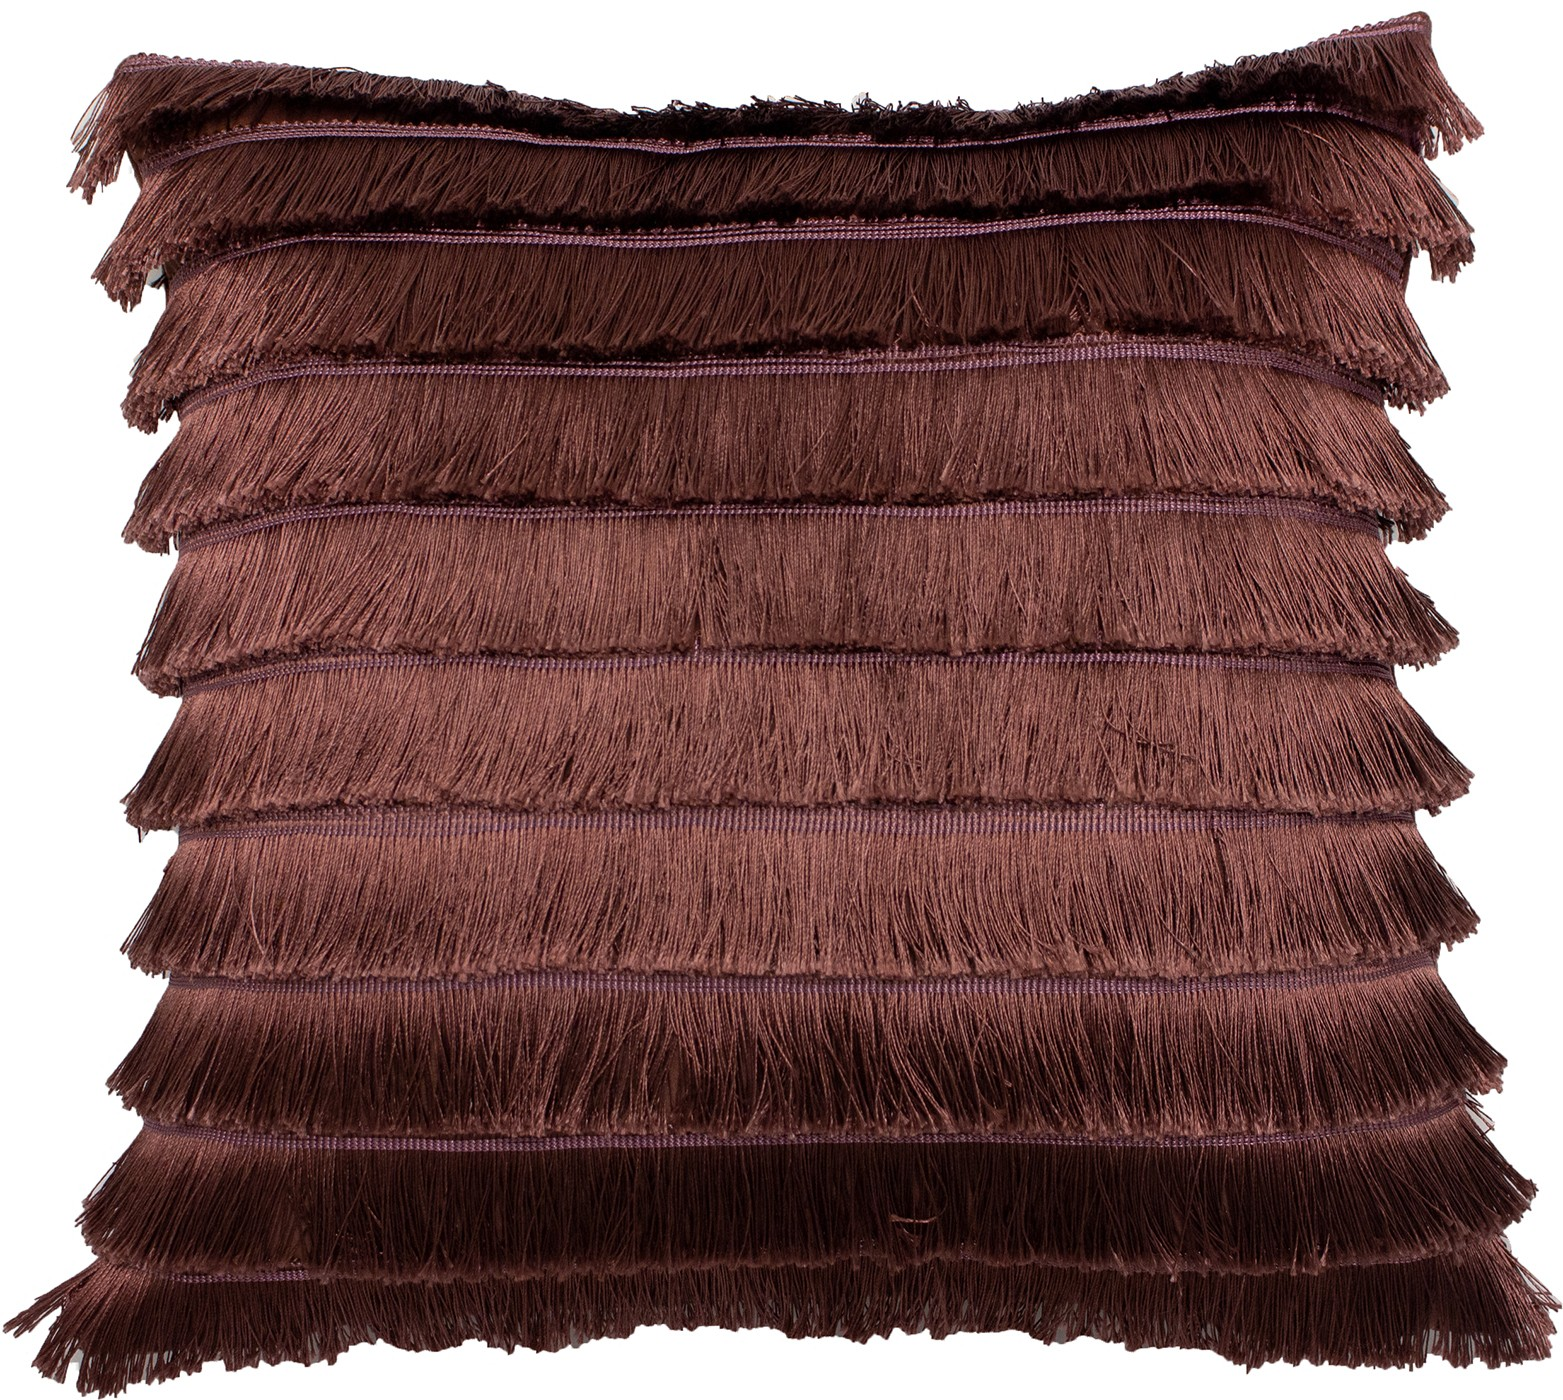 The Home Furnishings Company Flicker Rose Fringed  Cushion 45x45cms